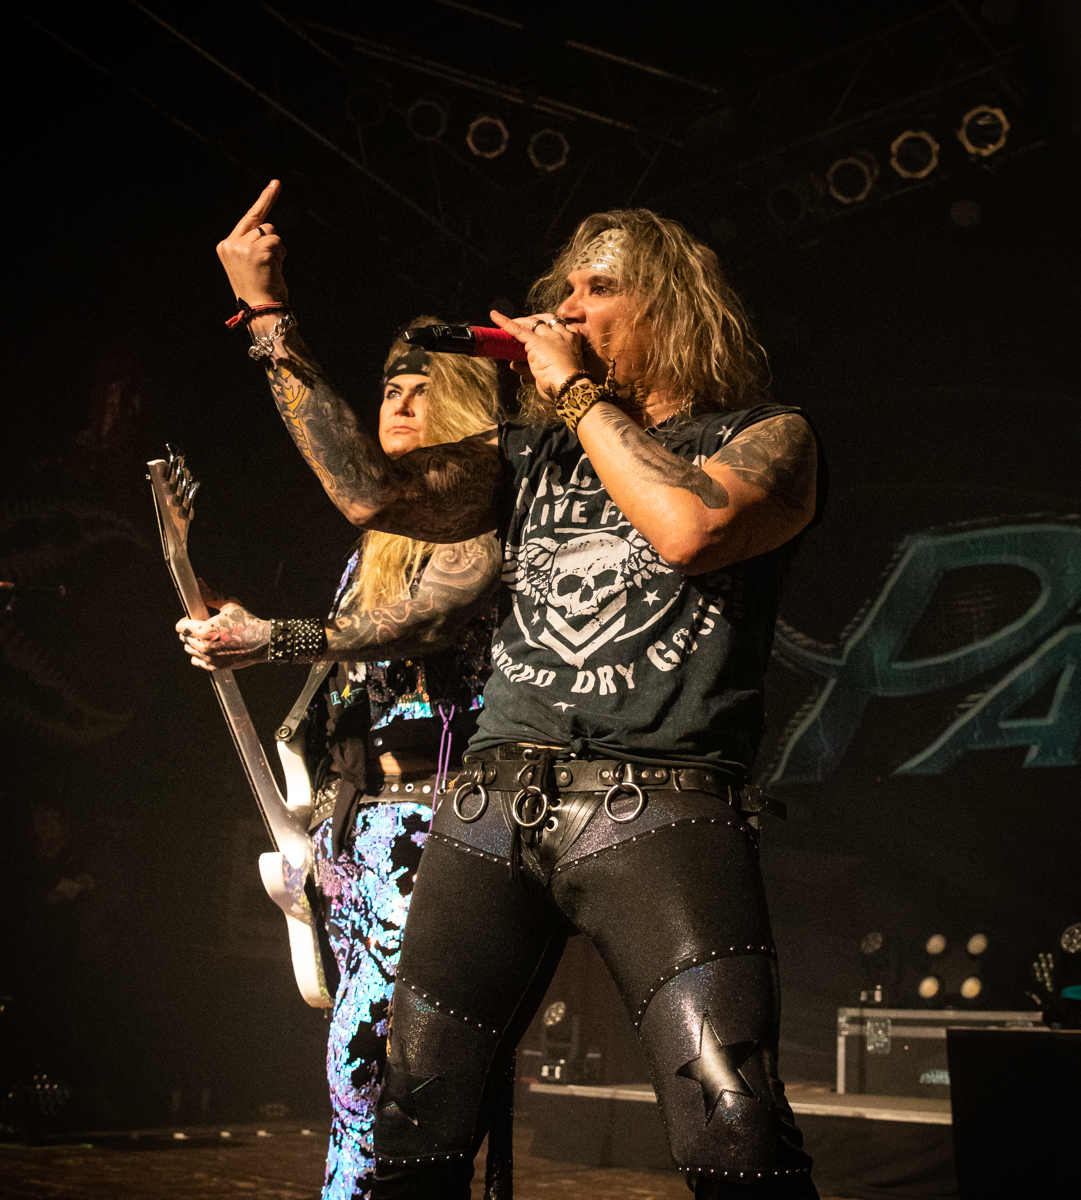 SteelPanther-HouseofBlues-Chicago_IL-20191208-IanBardecki-265